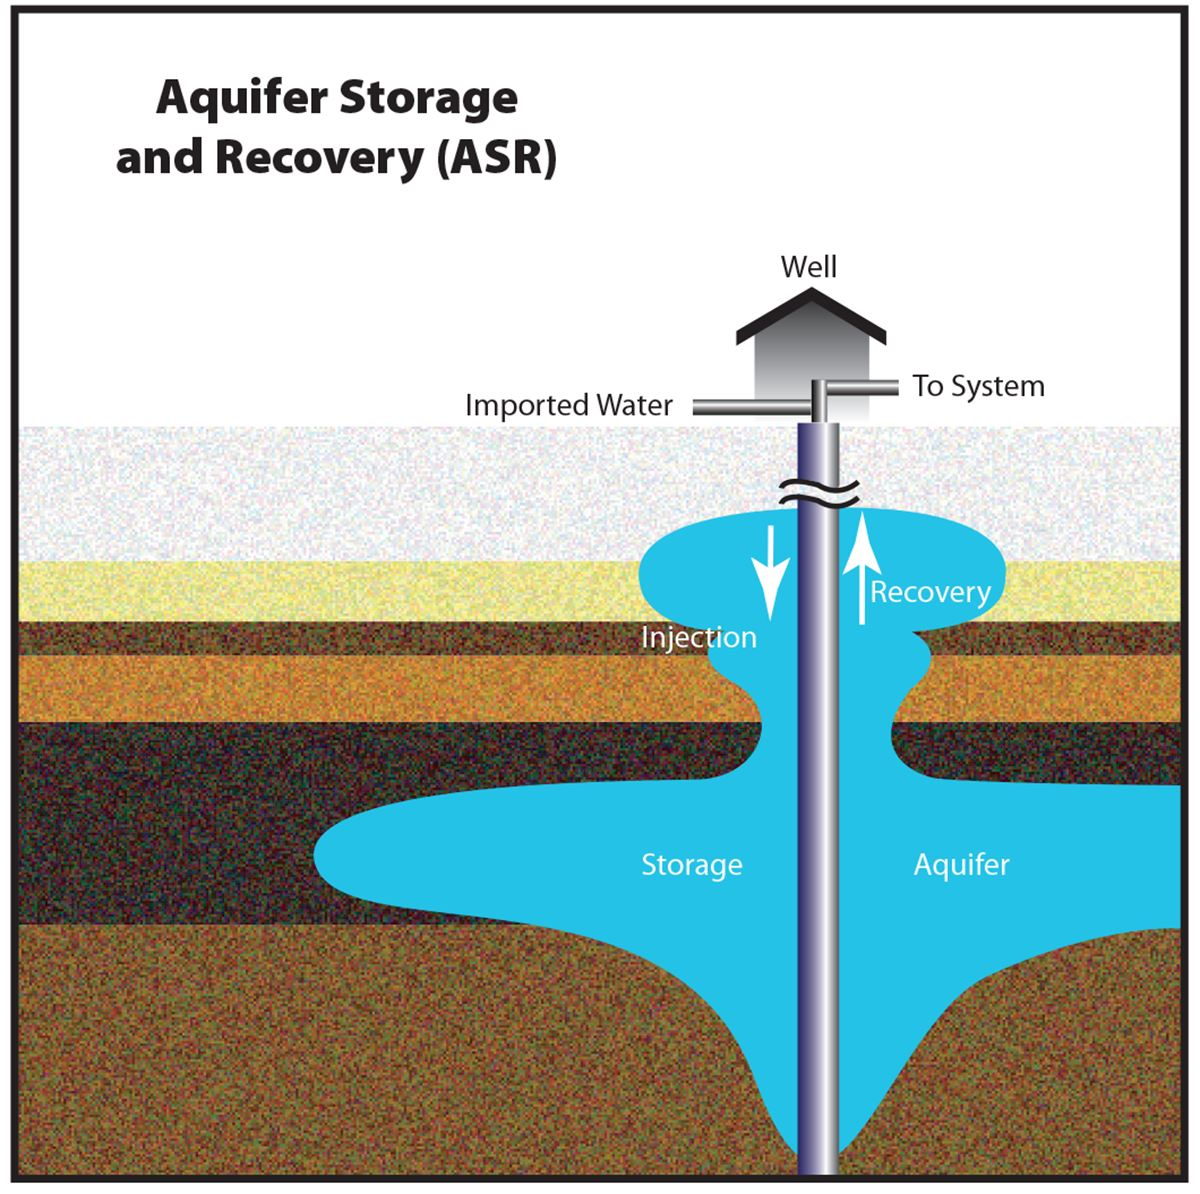 Aquifer Storage and Recovery illustration